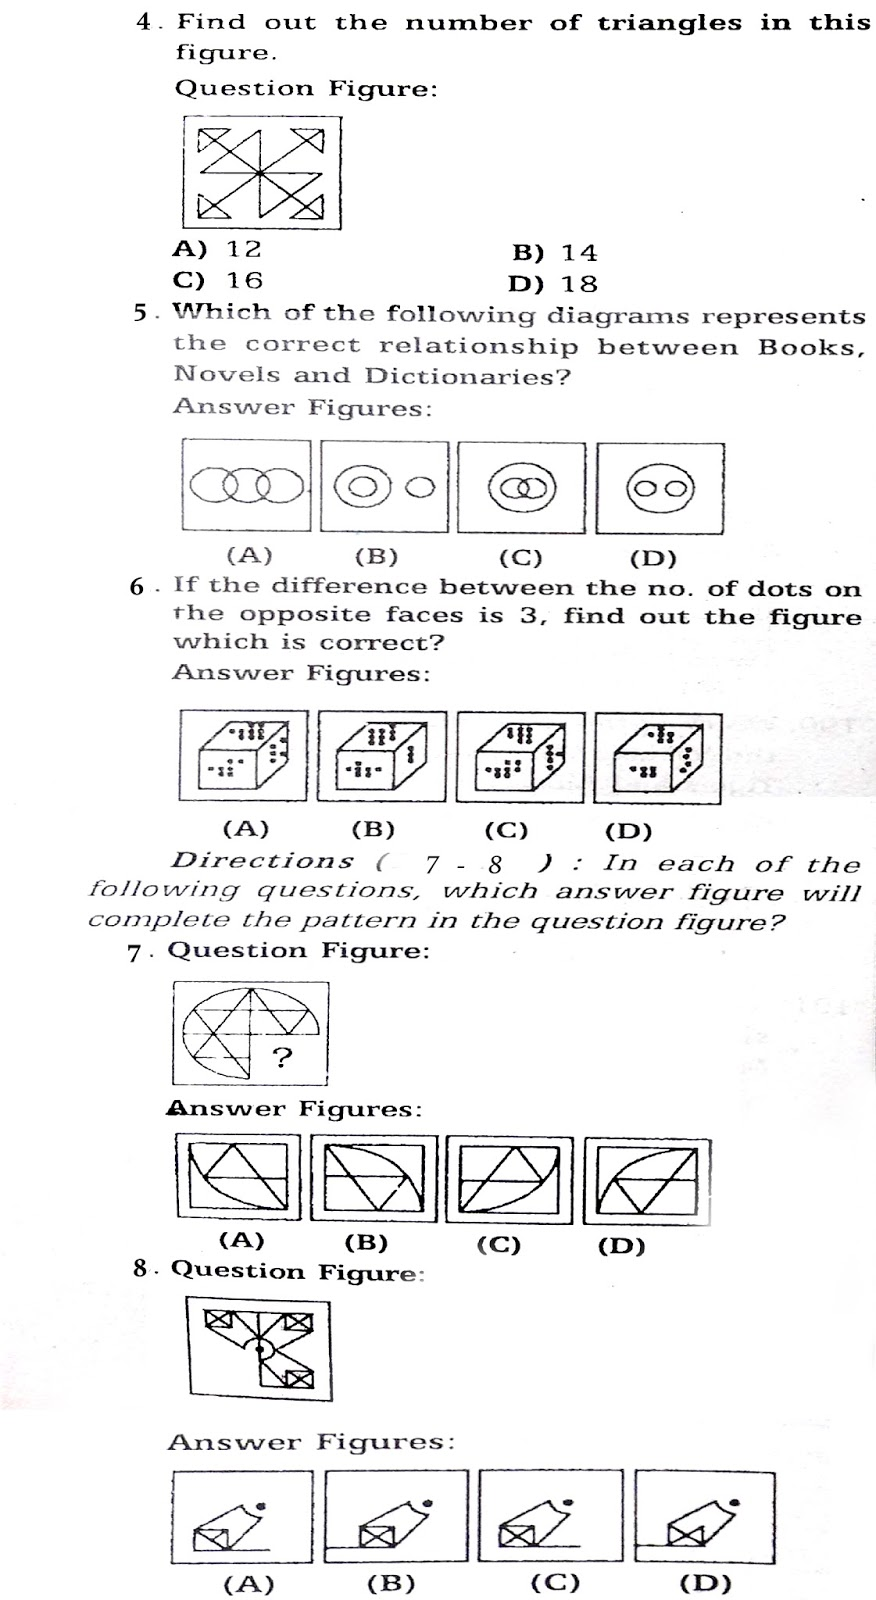 practice reasoning questions explanations for ssc fci exam the list of general intelligence and reasoning questions explanations for ssc chsl fci exam were given below candidate those who are applied for this